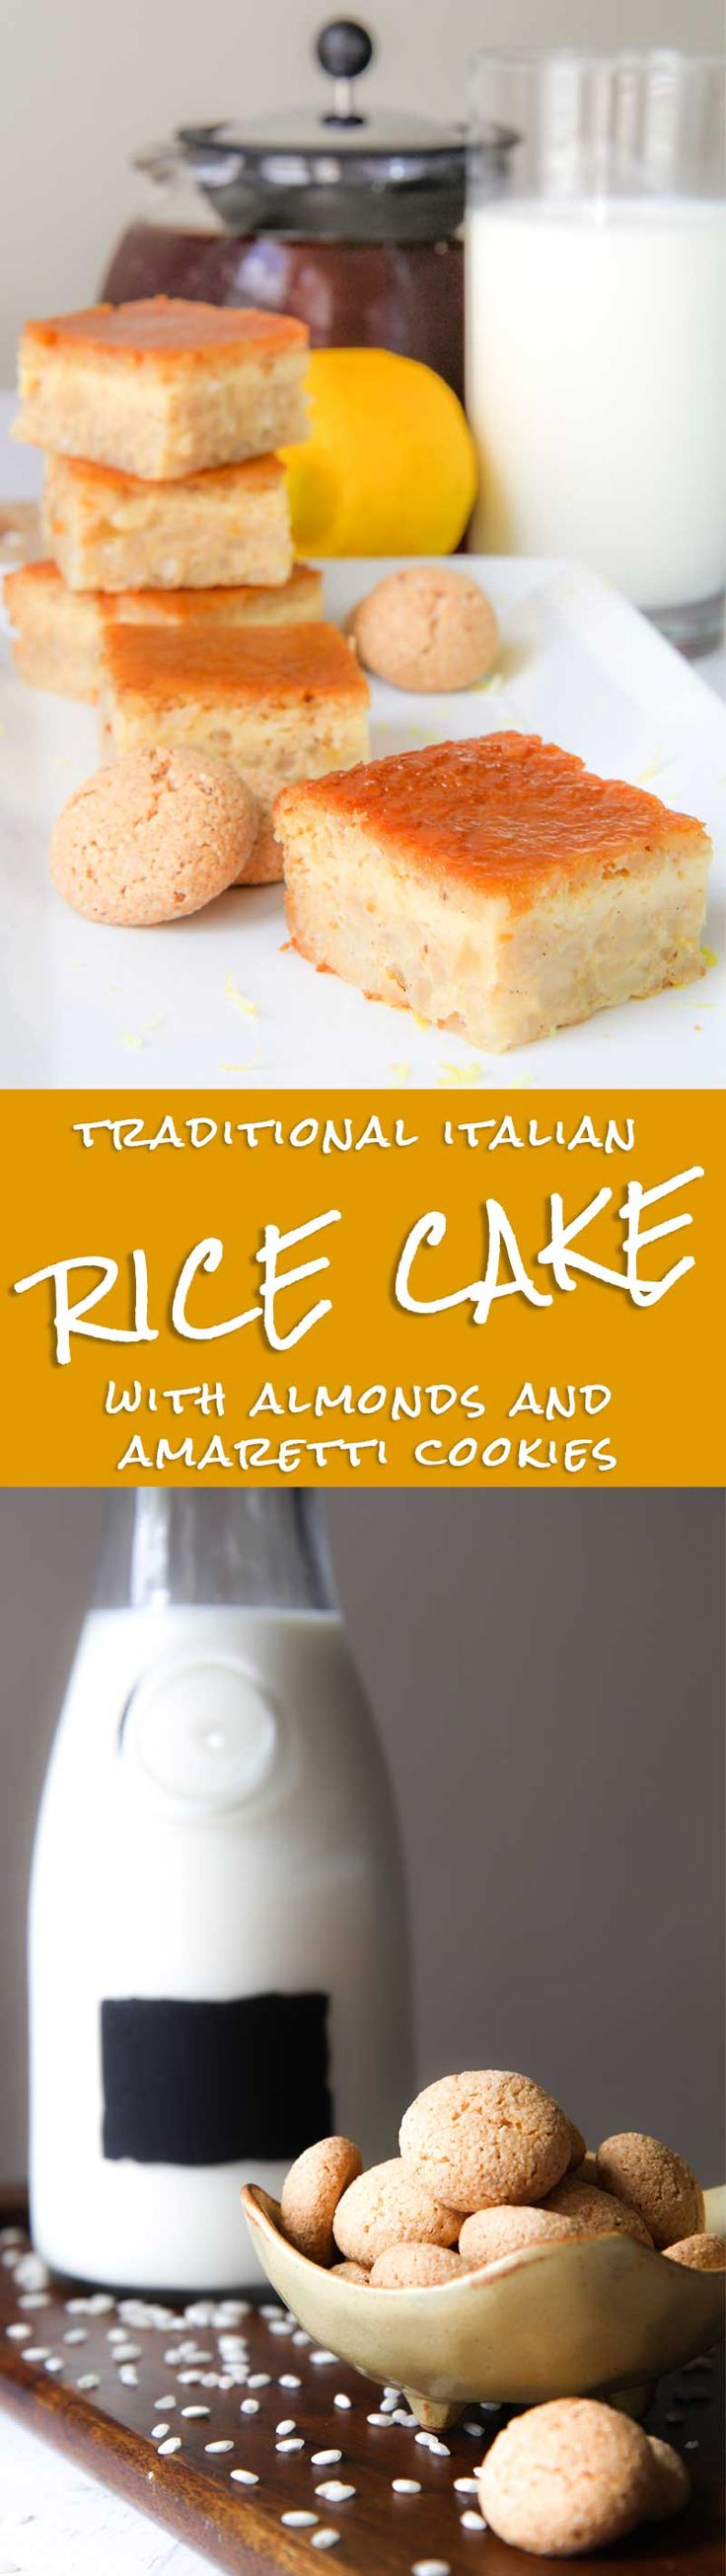 """ITALIAN RICE CAKE with almonds and Amaretti cookies - The Italian rice cake, called also """"Torta degli Addobbi"""" is a simple and tasty dessert of the Emilian tradition. Originally, this cake had been prepared for the """"Festa degli Addobbi"""", a medieval festivity where colored drapes were showed out from the windows. But, currently is common serve rice cake all year long. Arborio rice is slowly cooked into the milk and spices, then the mixture is baked into the oven! - desserts recipe idea"""